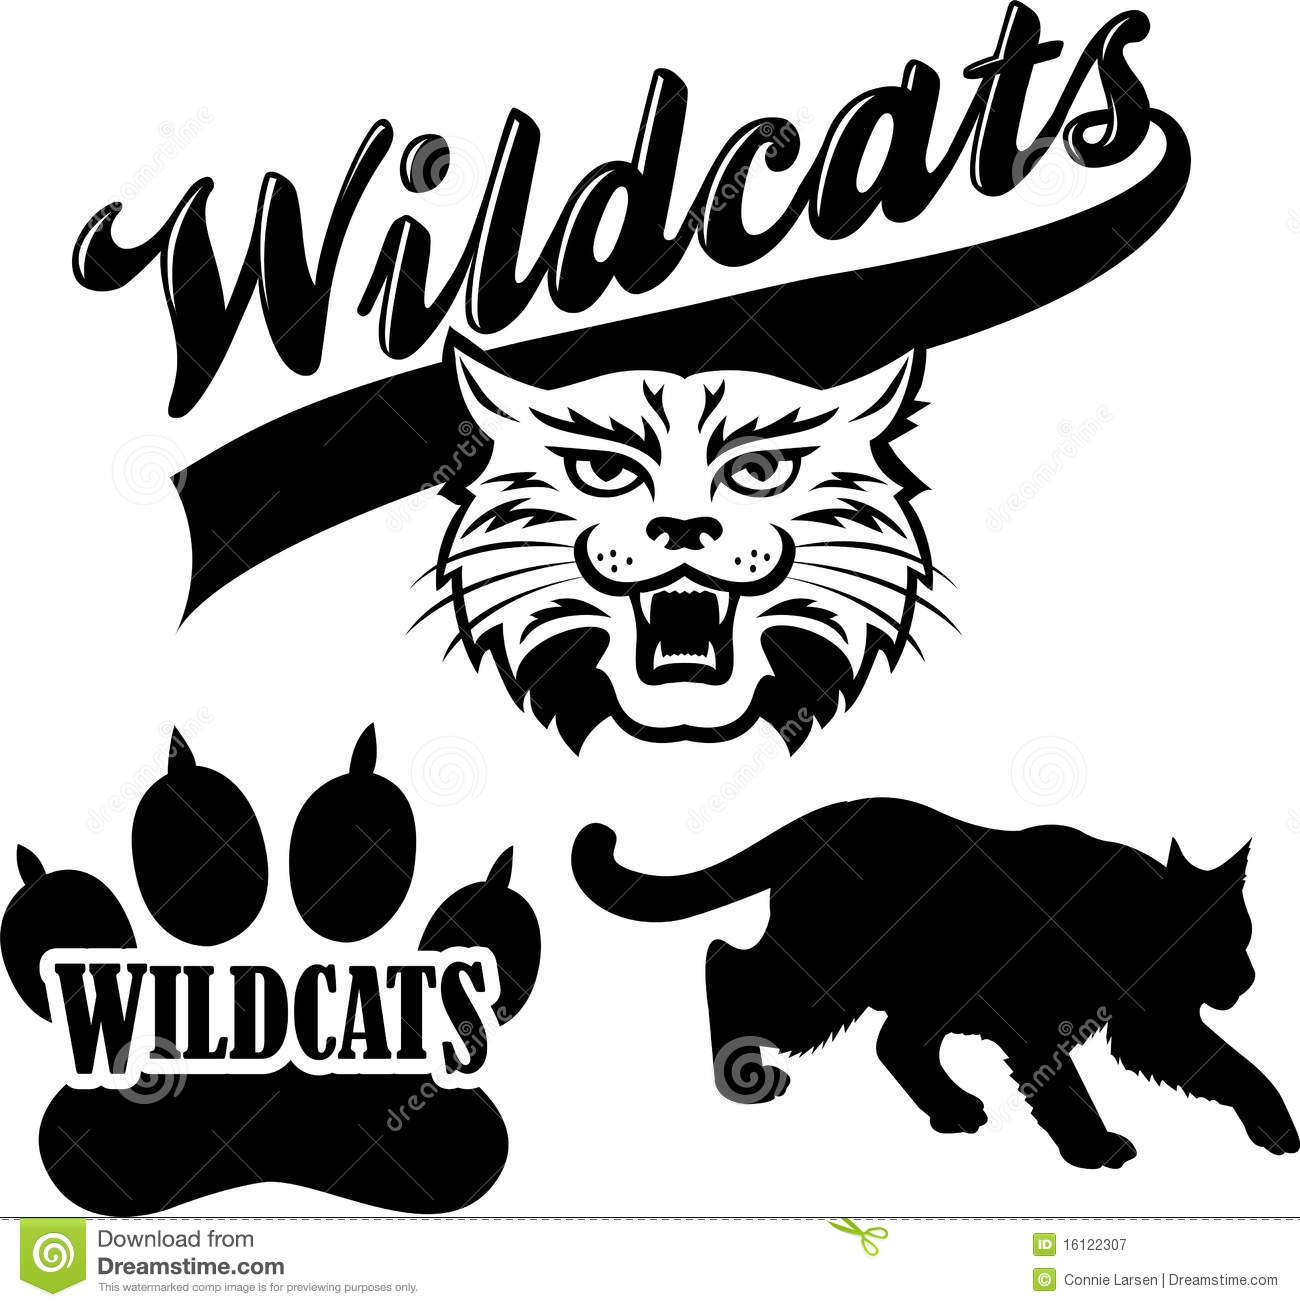 Wildcat clipart illustrations and clip art 100 wildcat